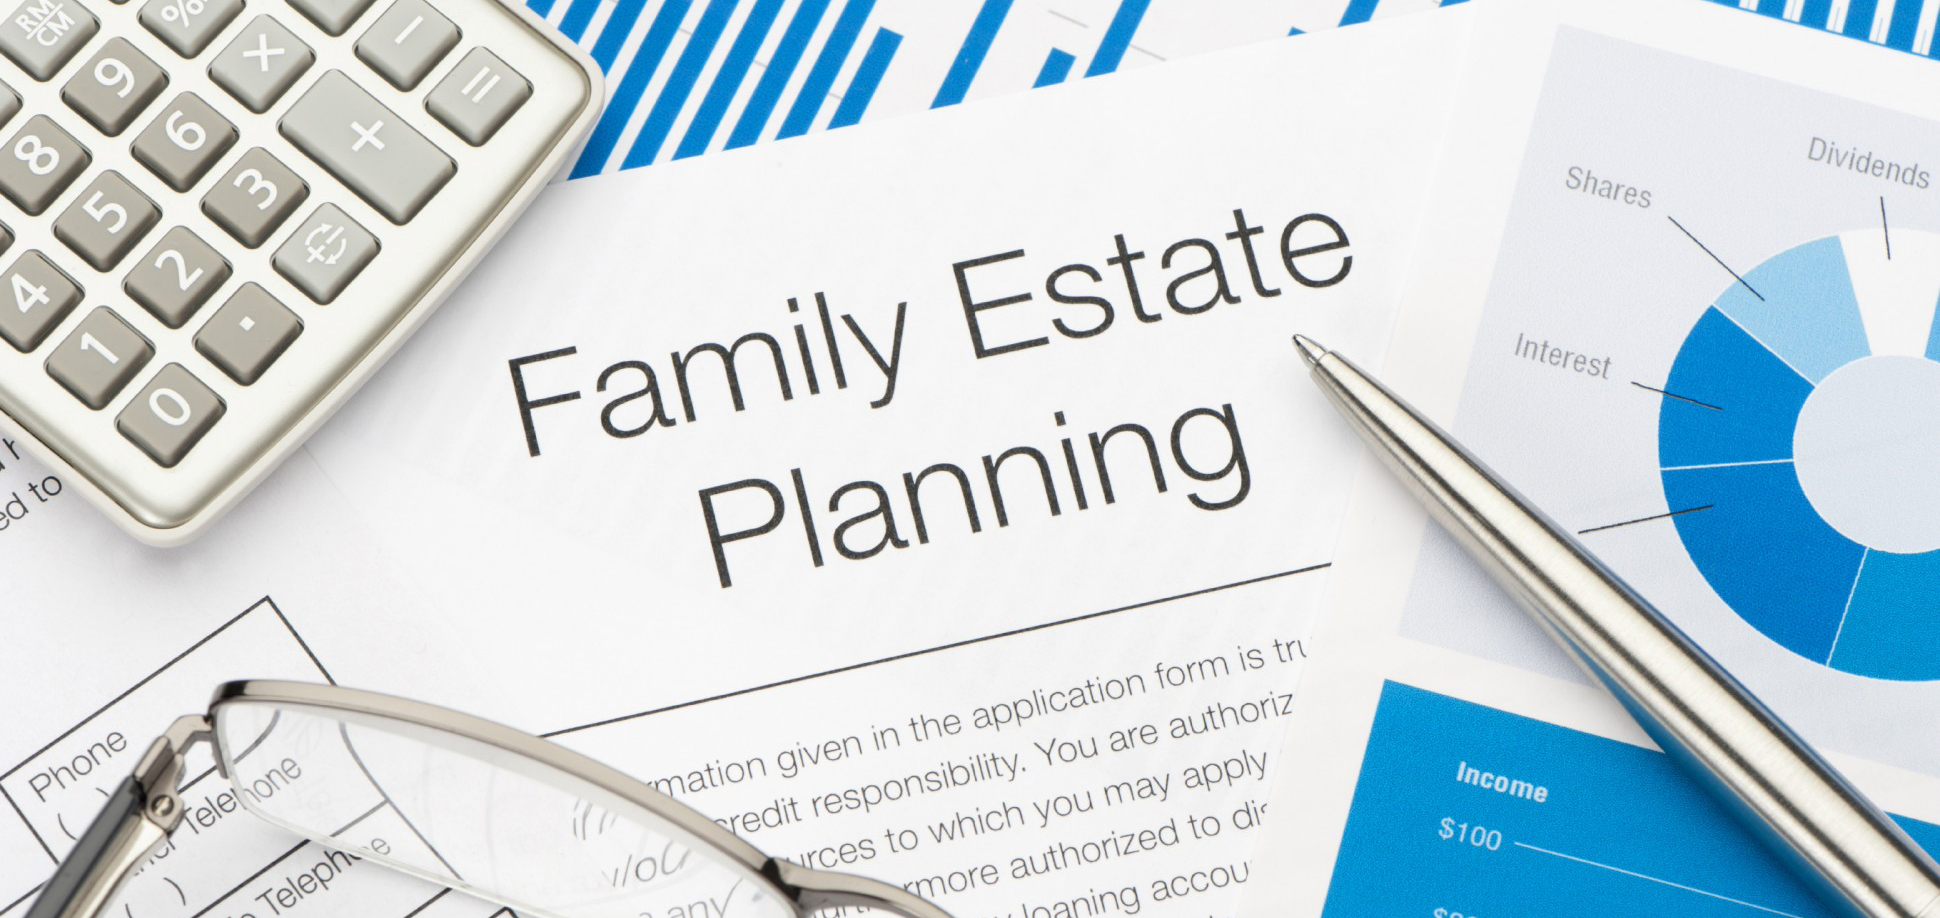 The Importance of Wills, Trusts and Estate Planning